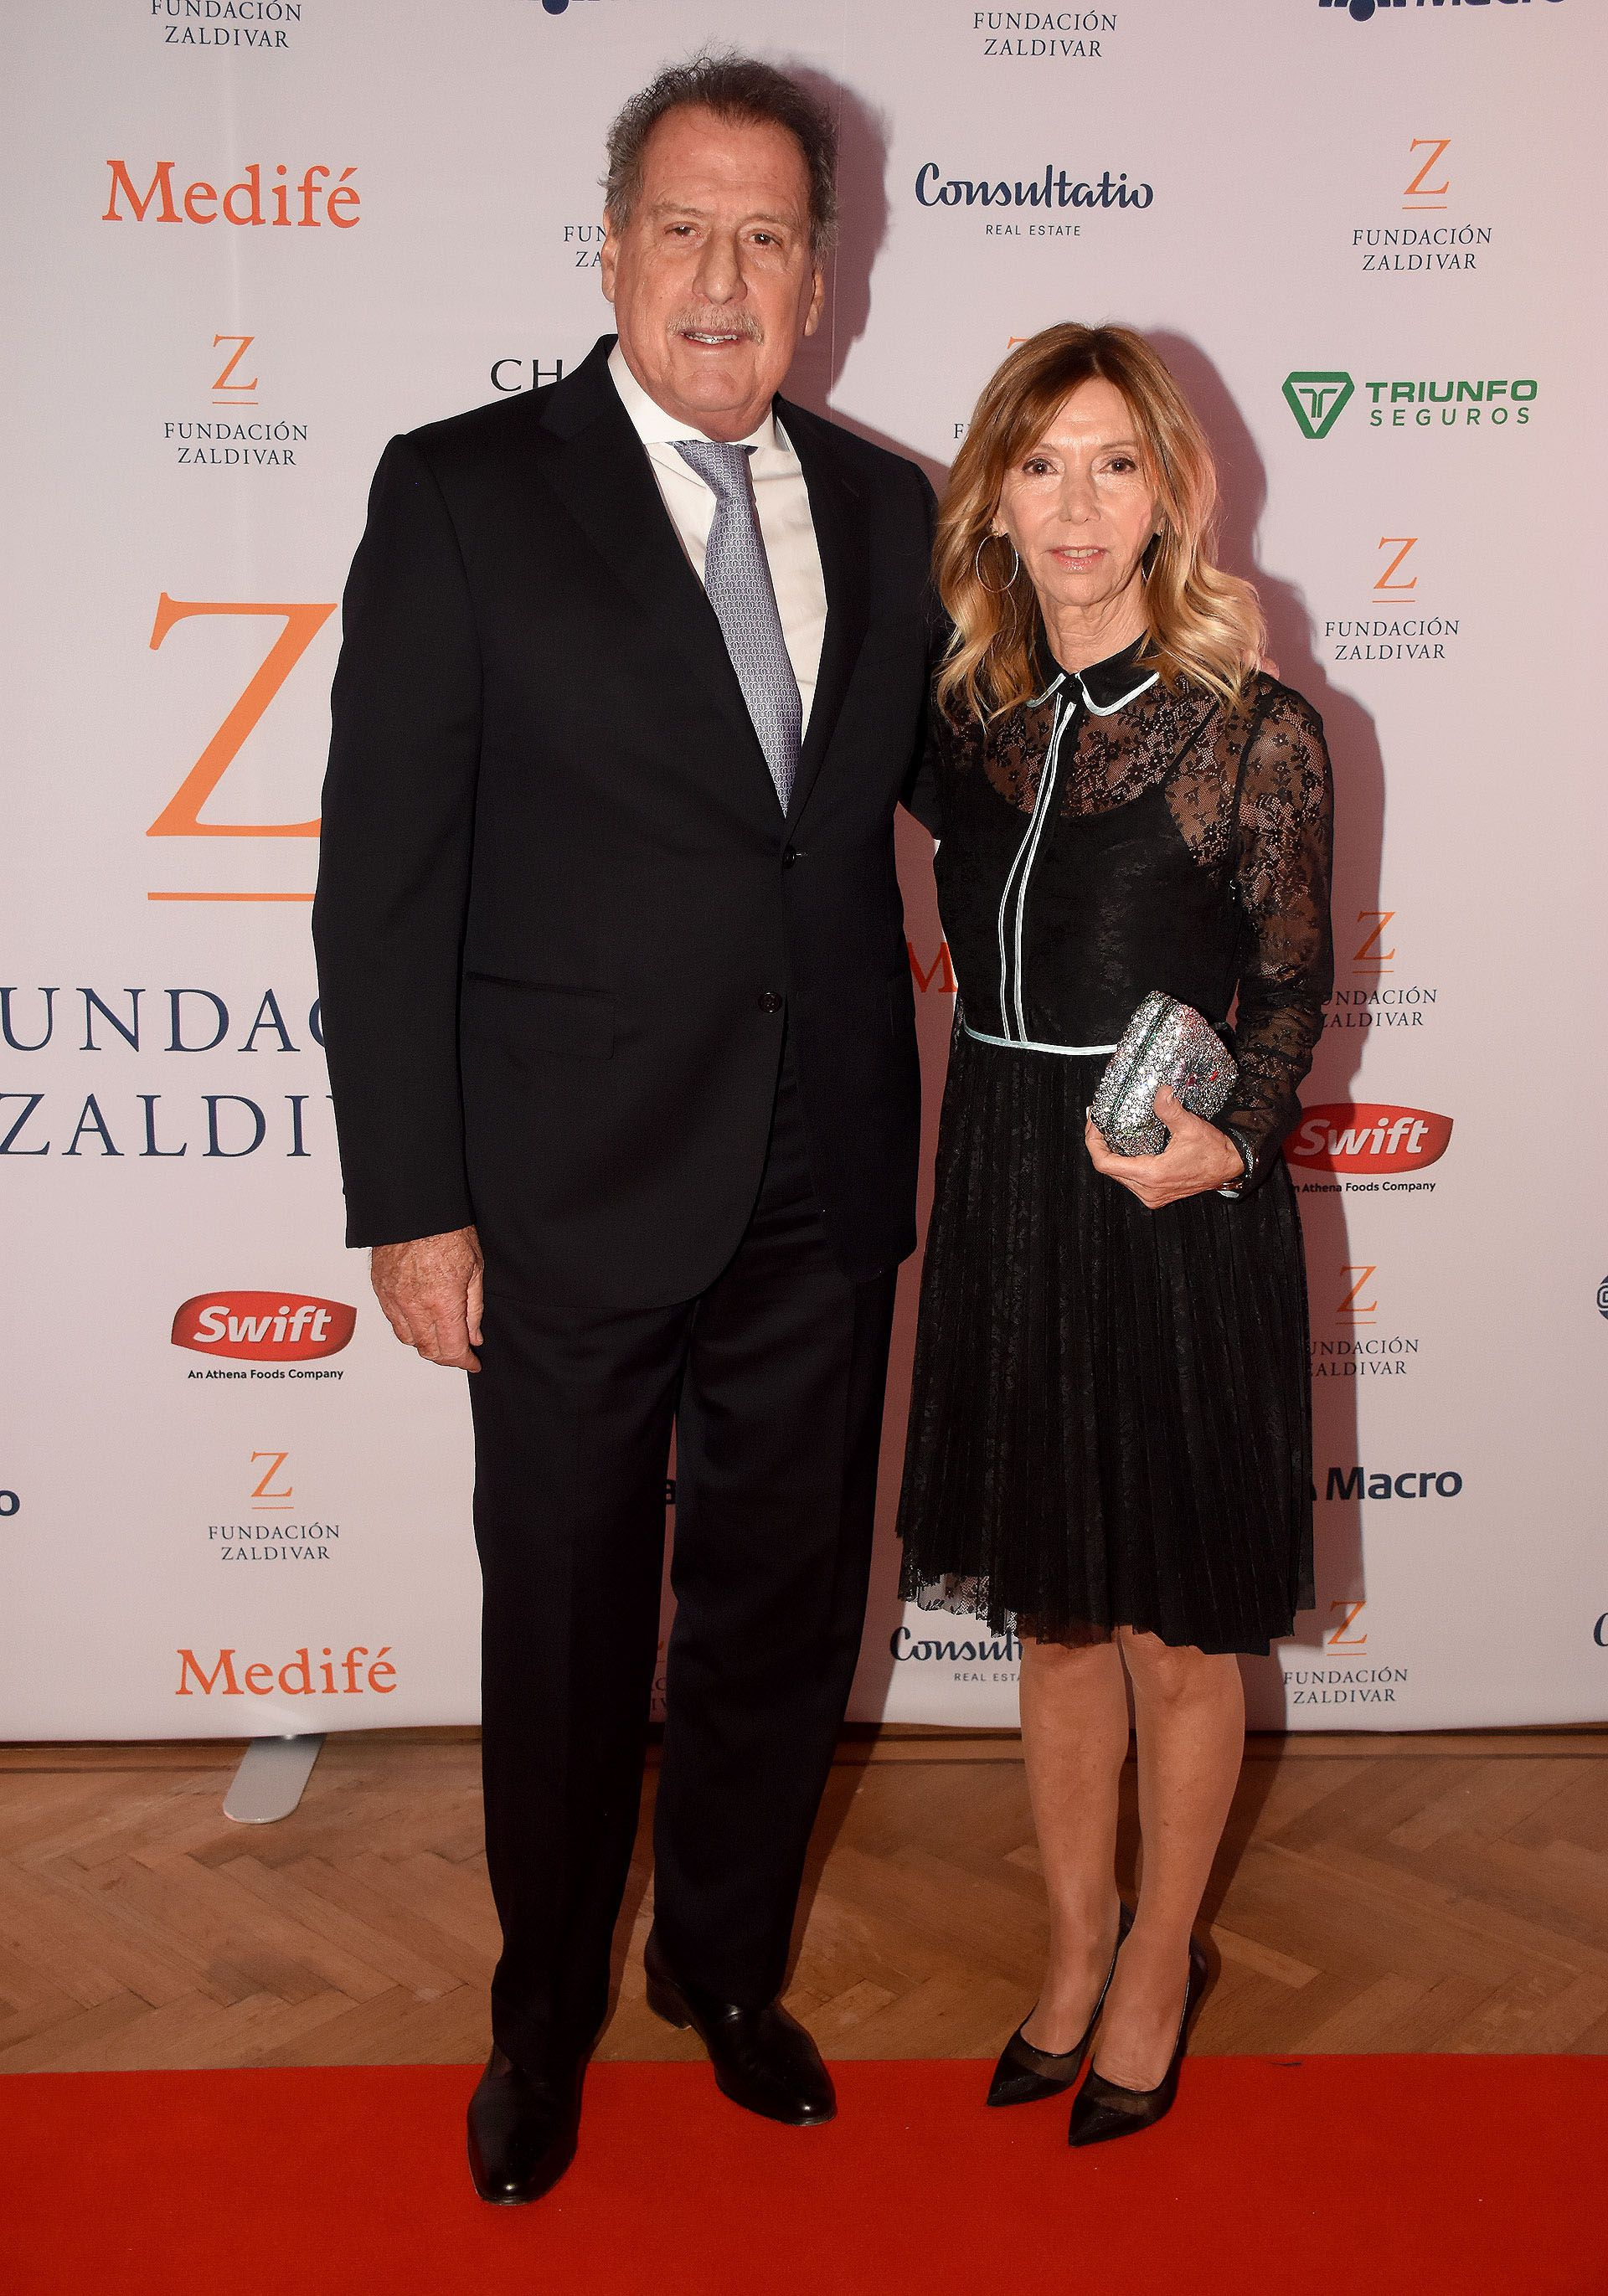 The businessman Jorge Brito and his wife Marcela Carballo at an edition of the Zaldívar Foundation gala, at the Alvear Palace Hotel